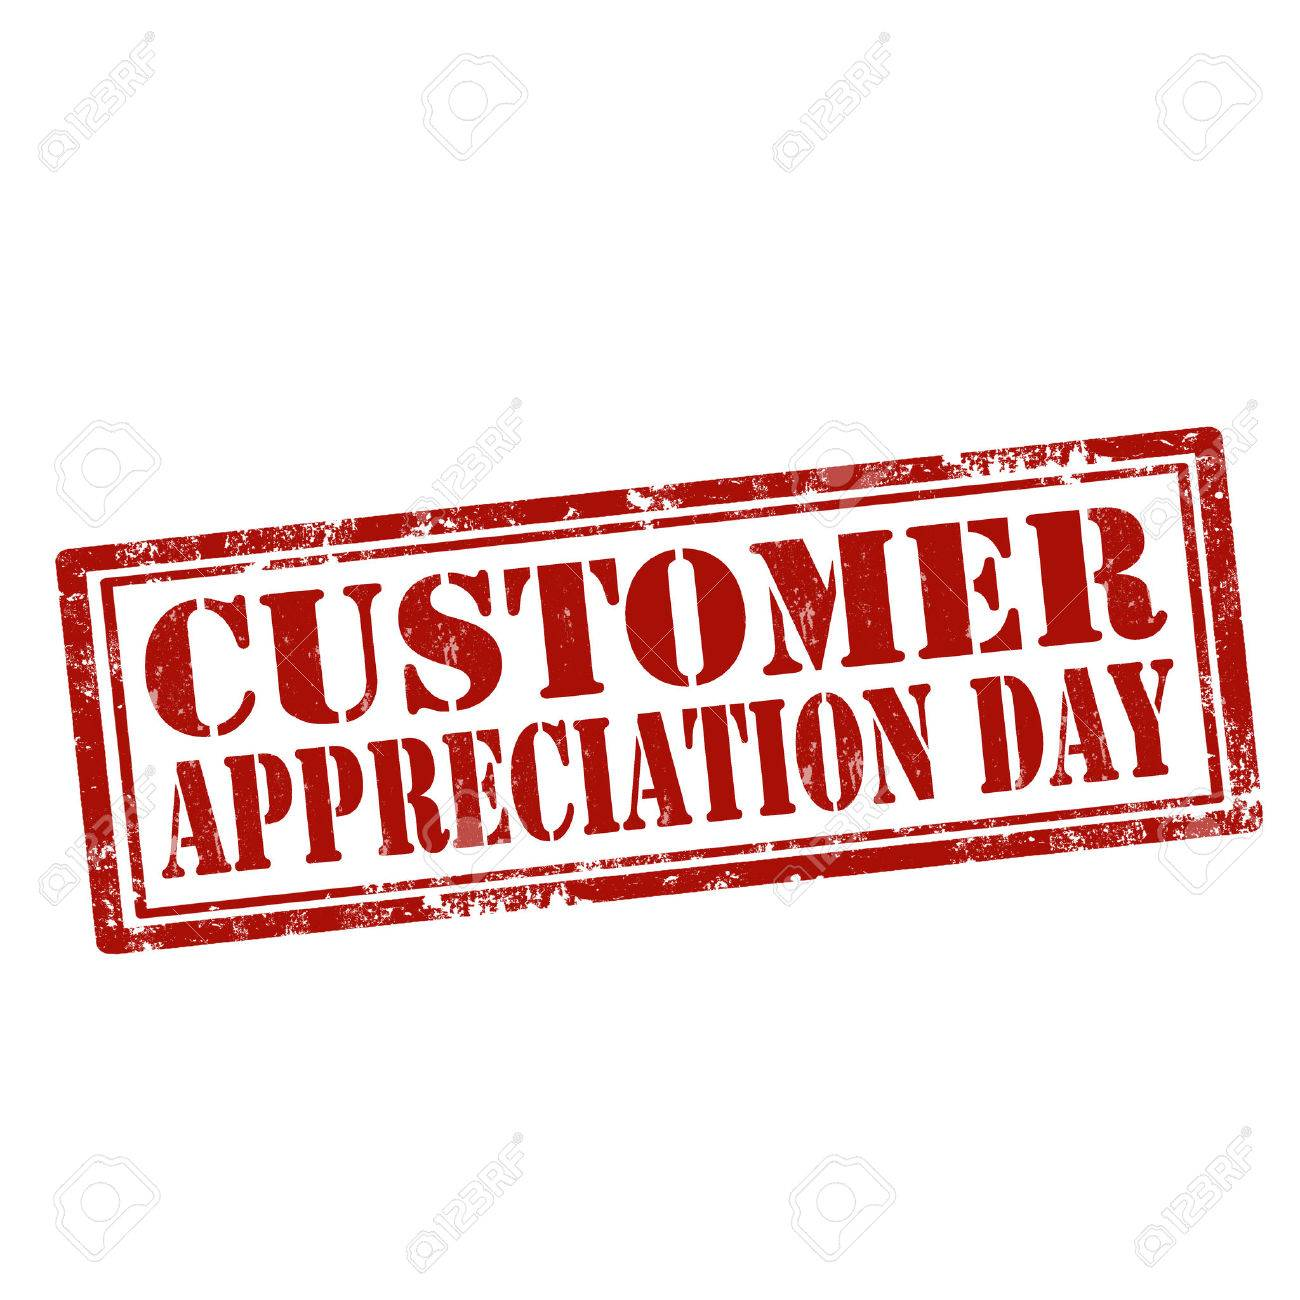 Grunge rubber stamp with text Customer Appreciation Day,vector illustration - 61024903